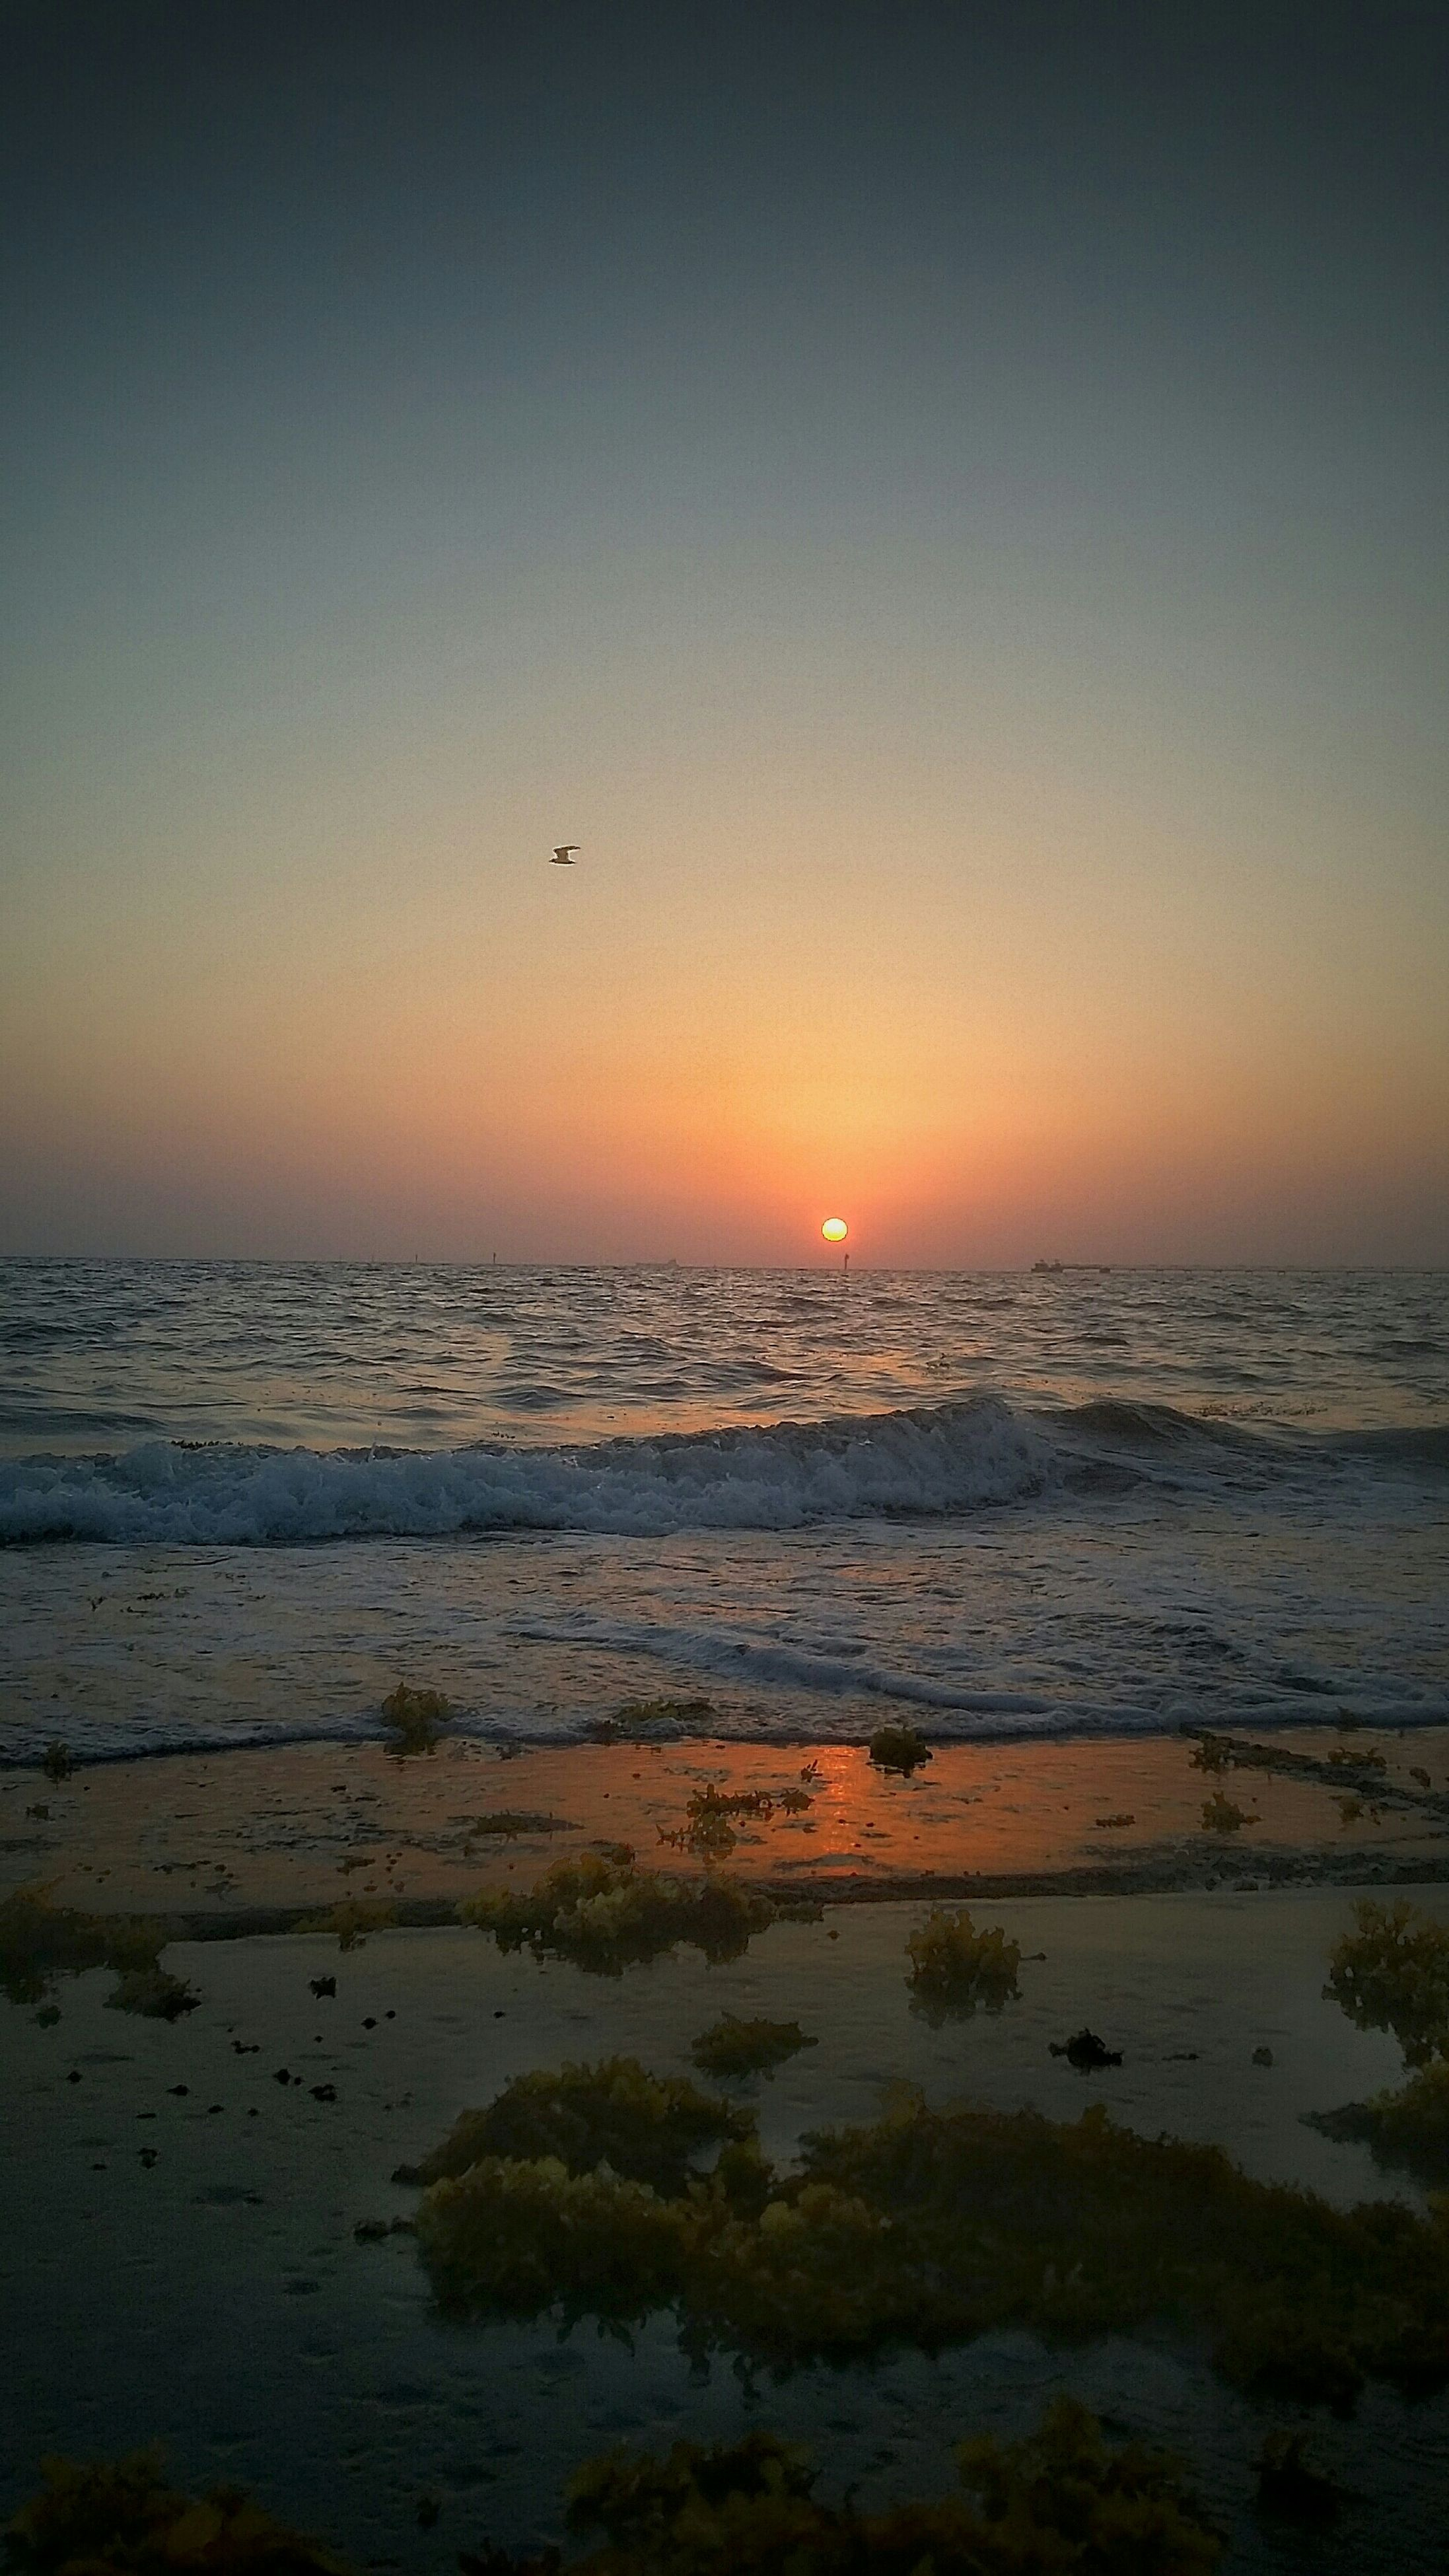 sunset, sea, water, horizon over water, beach, scenics, tranquil scene, tranquility, beauty in nature, shore, orange color, clear sky, copy space, sun, idyllic, nature, wave, sky, silhouette, remote